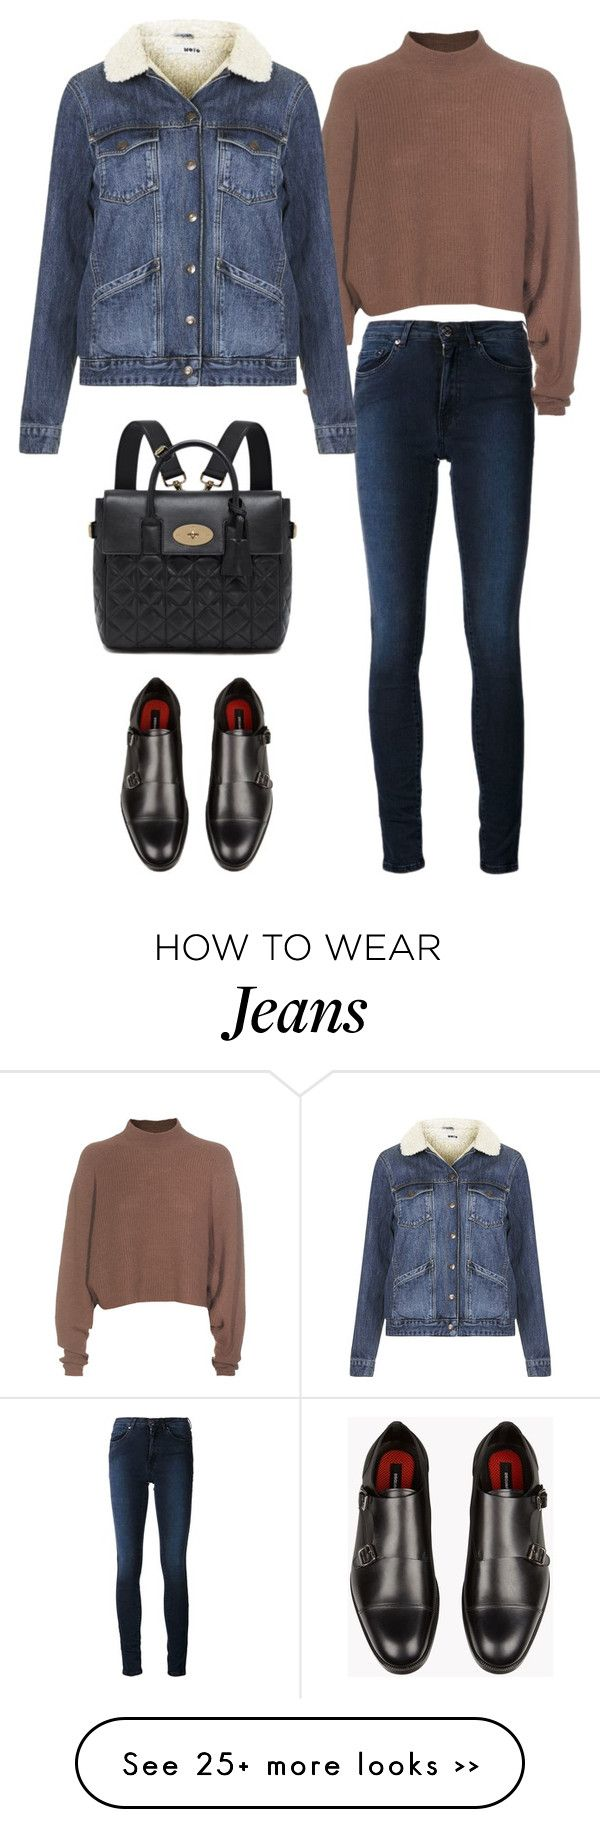 """""""Acne Studios High-waisted Skinny Jeans"""" by junglover on Polyvore featuring moda, Acne Studios, Topshop e Mulberry"""